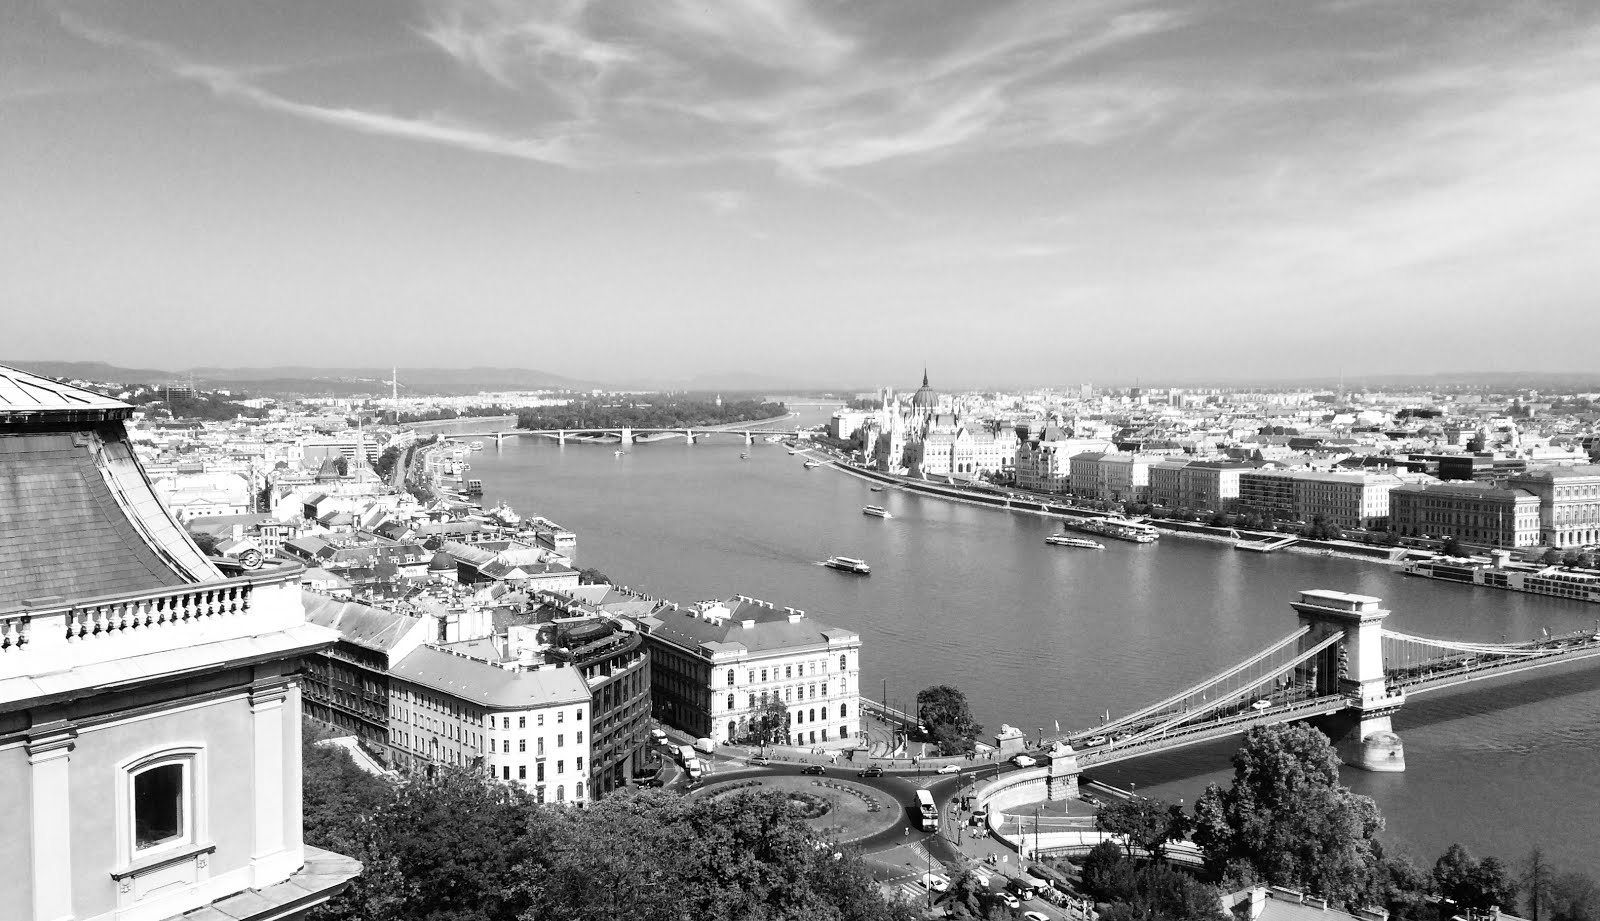 A Lyrical Sail through History on the Danube